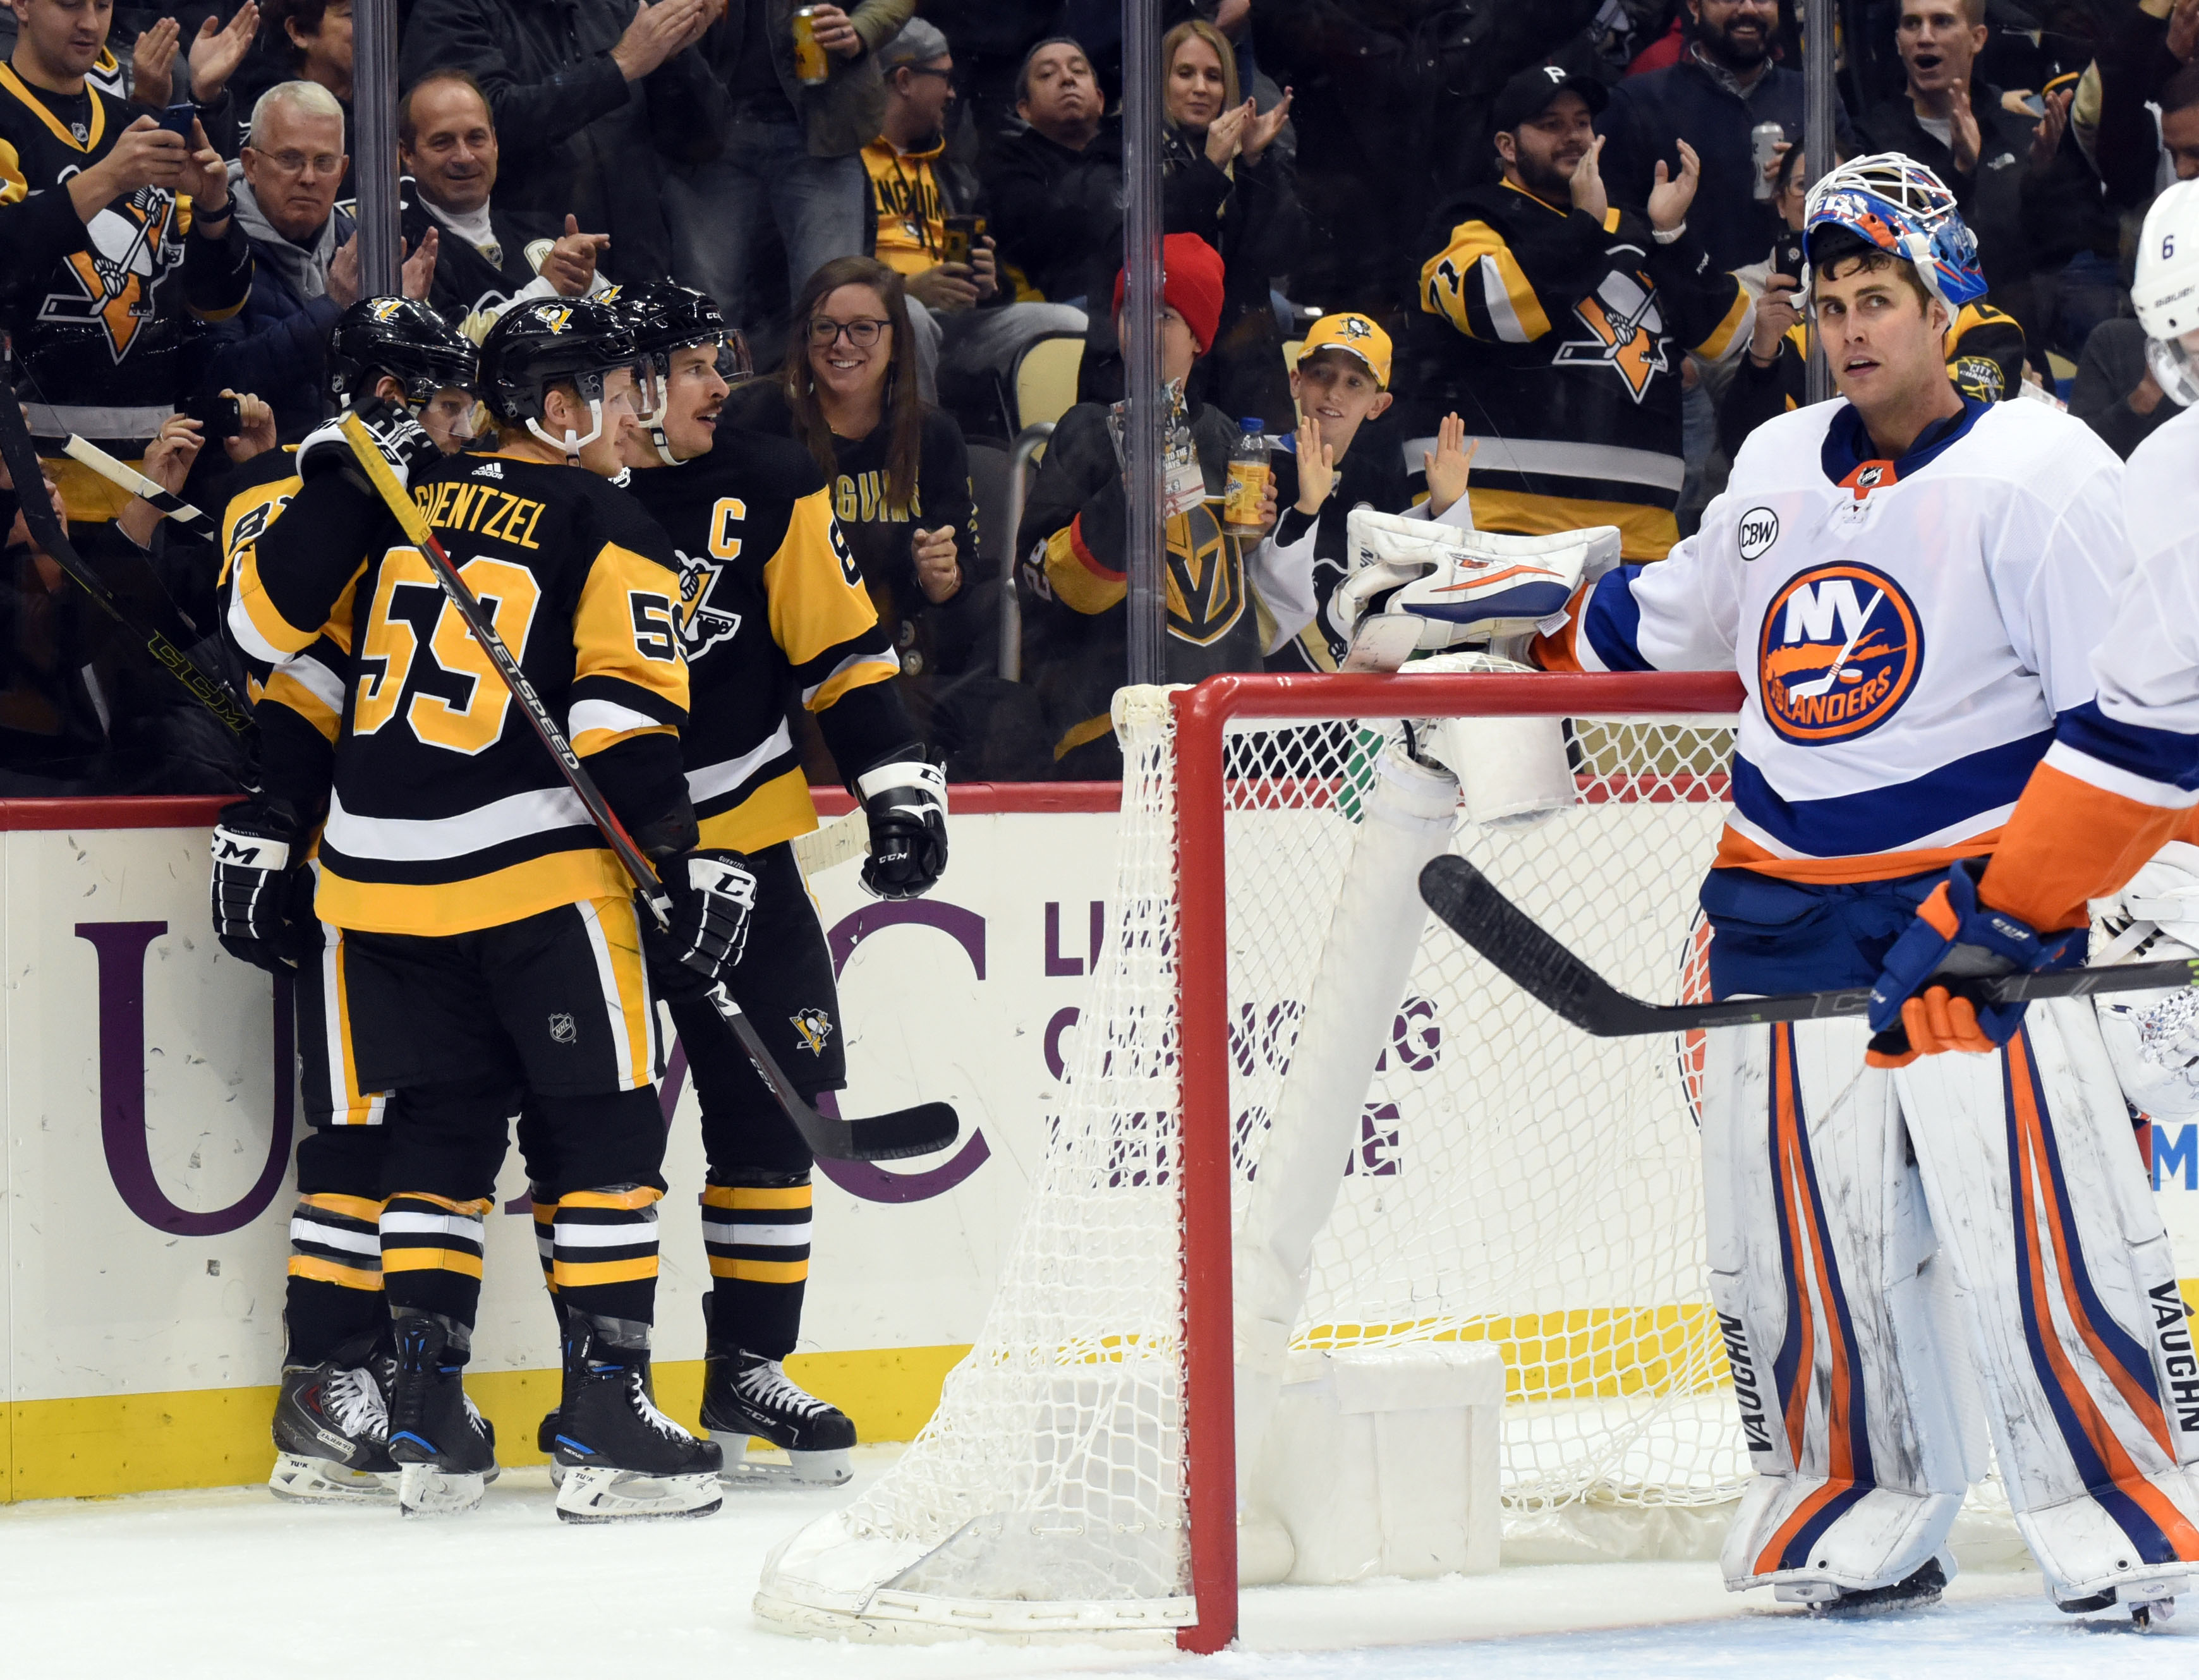 Dec 6, 2018; Pittsburgh, PA, USA; Pittsburgh Penguins winger Phil Kessel (81) celebrates a second period goal with captain Sidney Crosby (87) and winger Jake Guentzel (5) by New York Islanders goalie Thomas Greiss (1) at PPG PAINTS Arena. Mandatory Credit: Philip G. Pavely-USA TODAY Sports